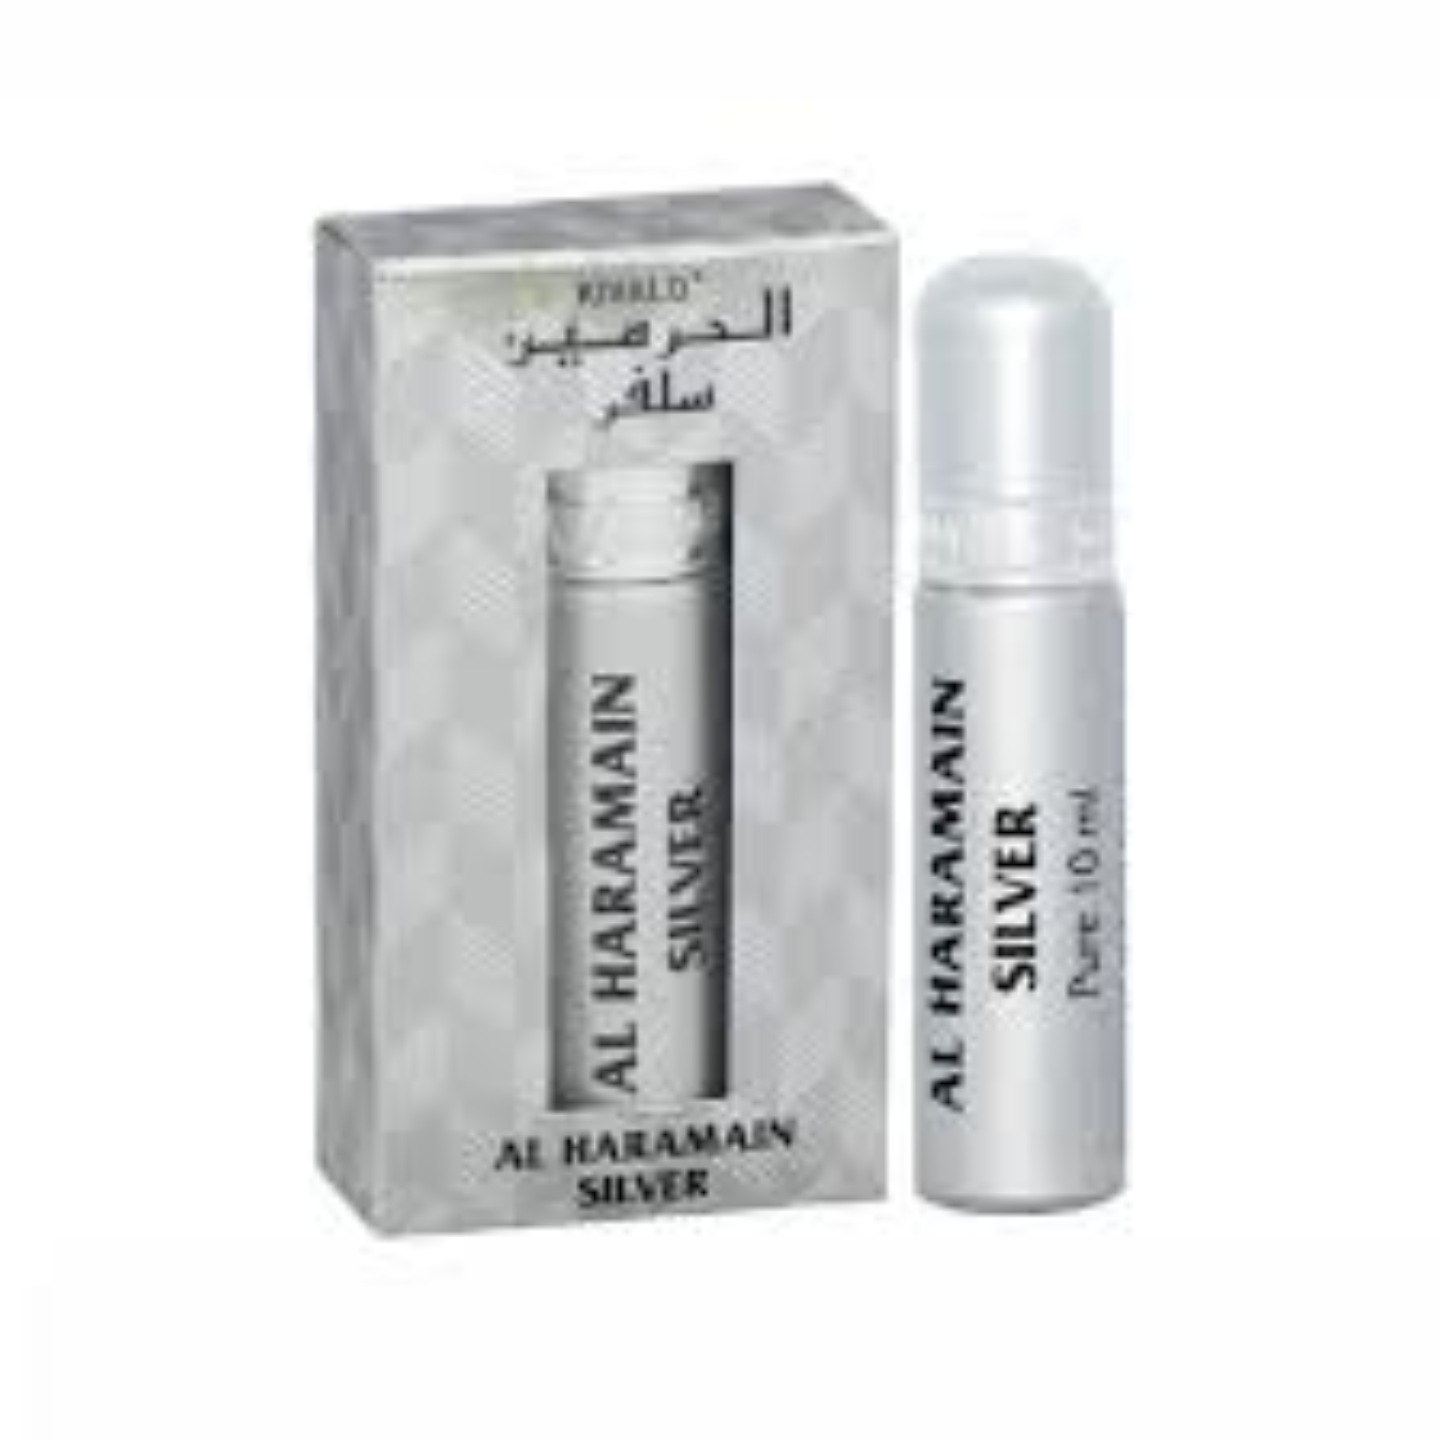 AL HARAMAIN SILVER ATTAR